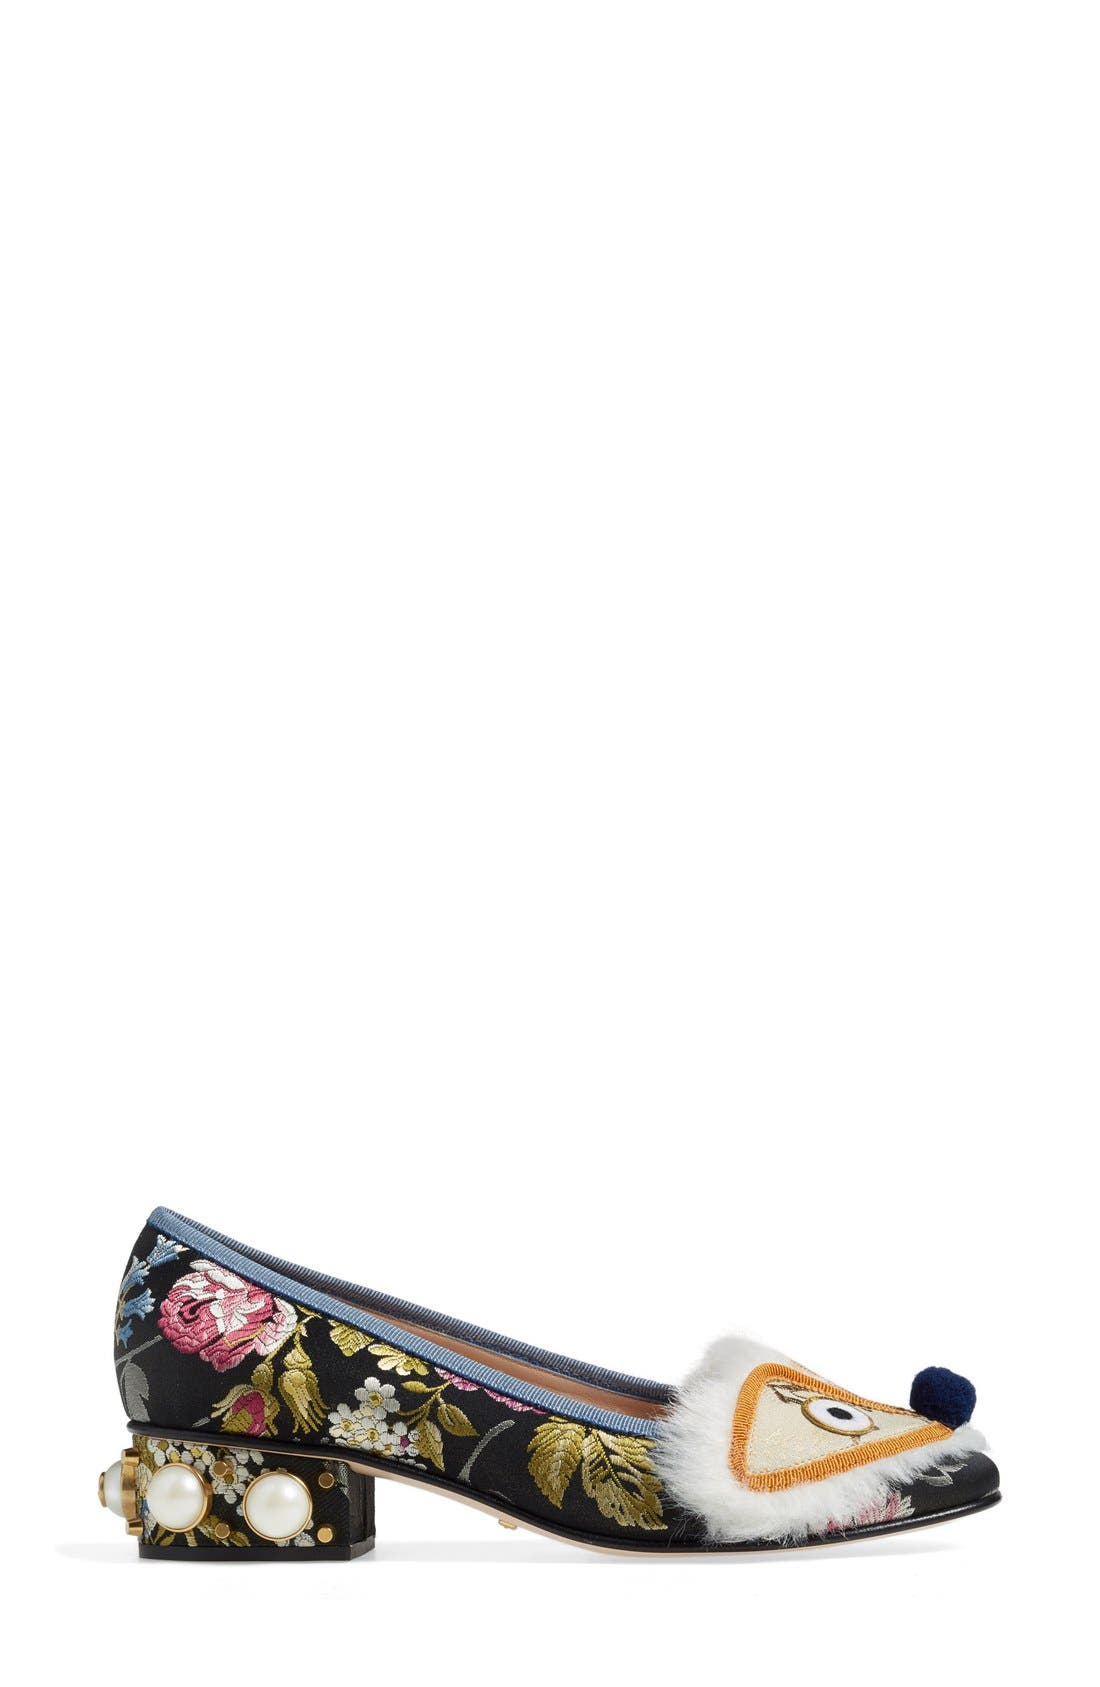 GUCCI, 'Kimberly' Embellished Pump, Alternate thumbnail 4, color, 020